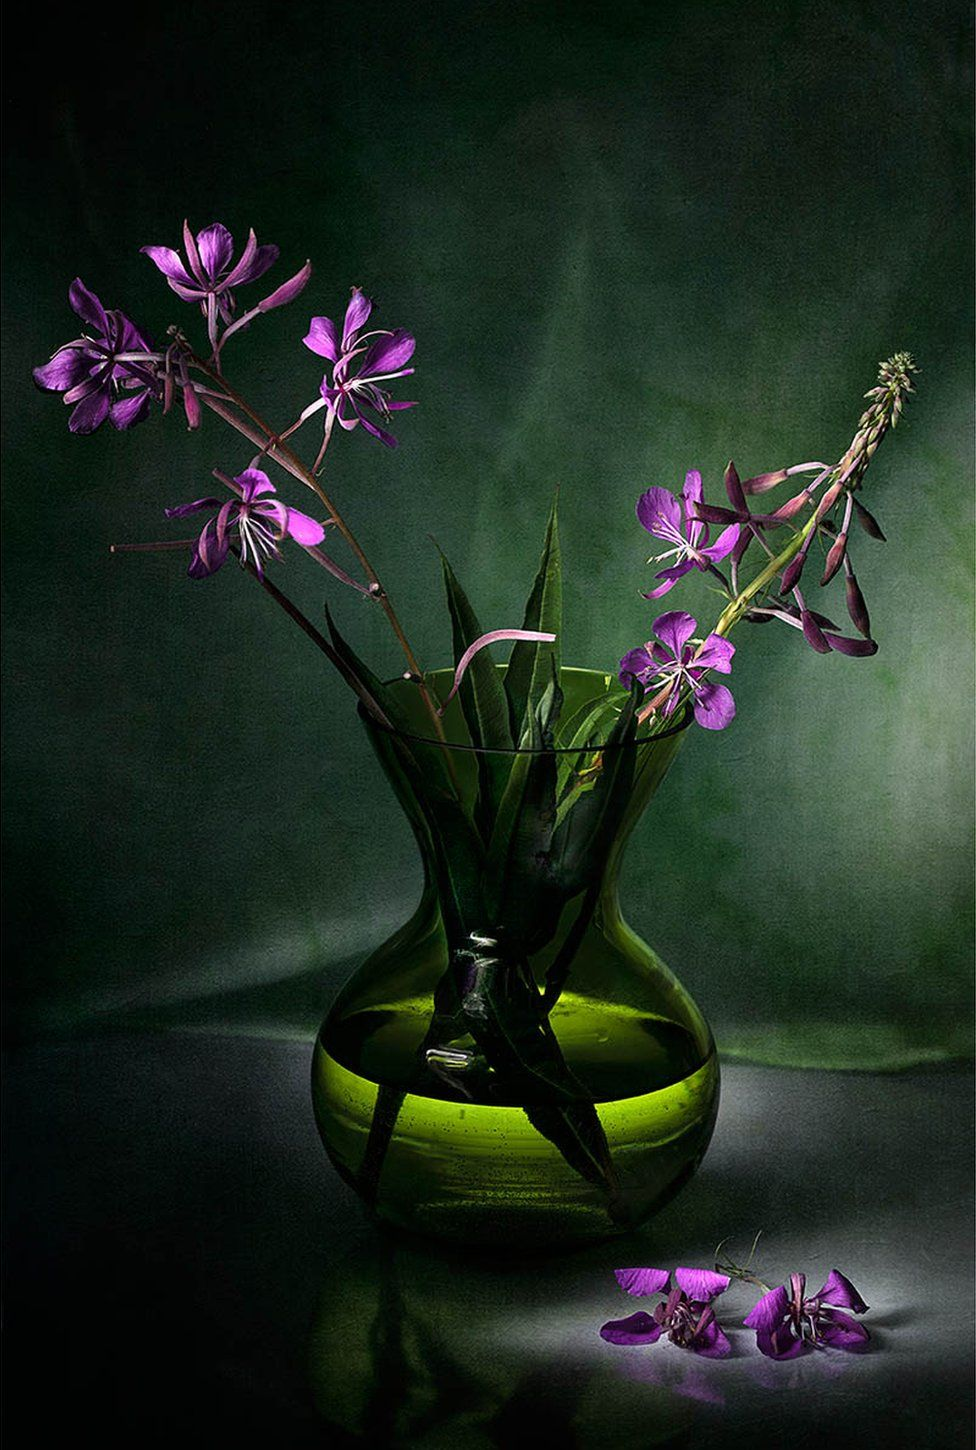 Vase in a dark room containing the flowers Chamaenerion angustifolium